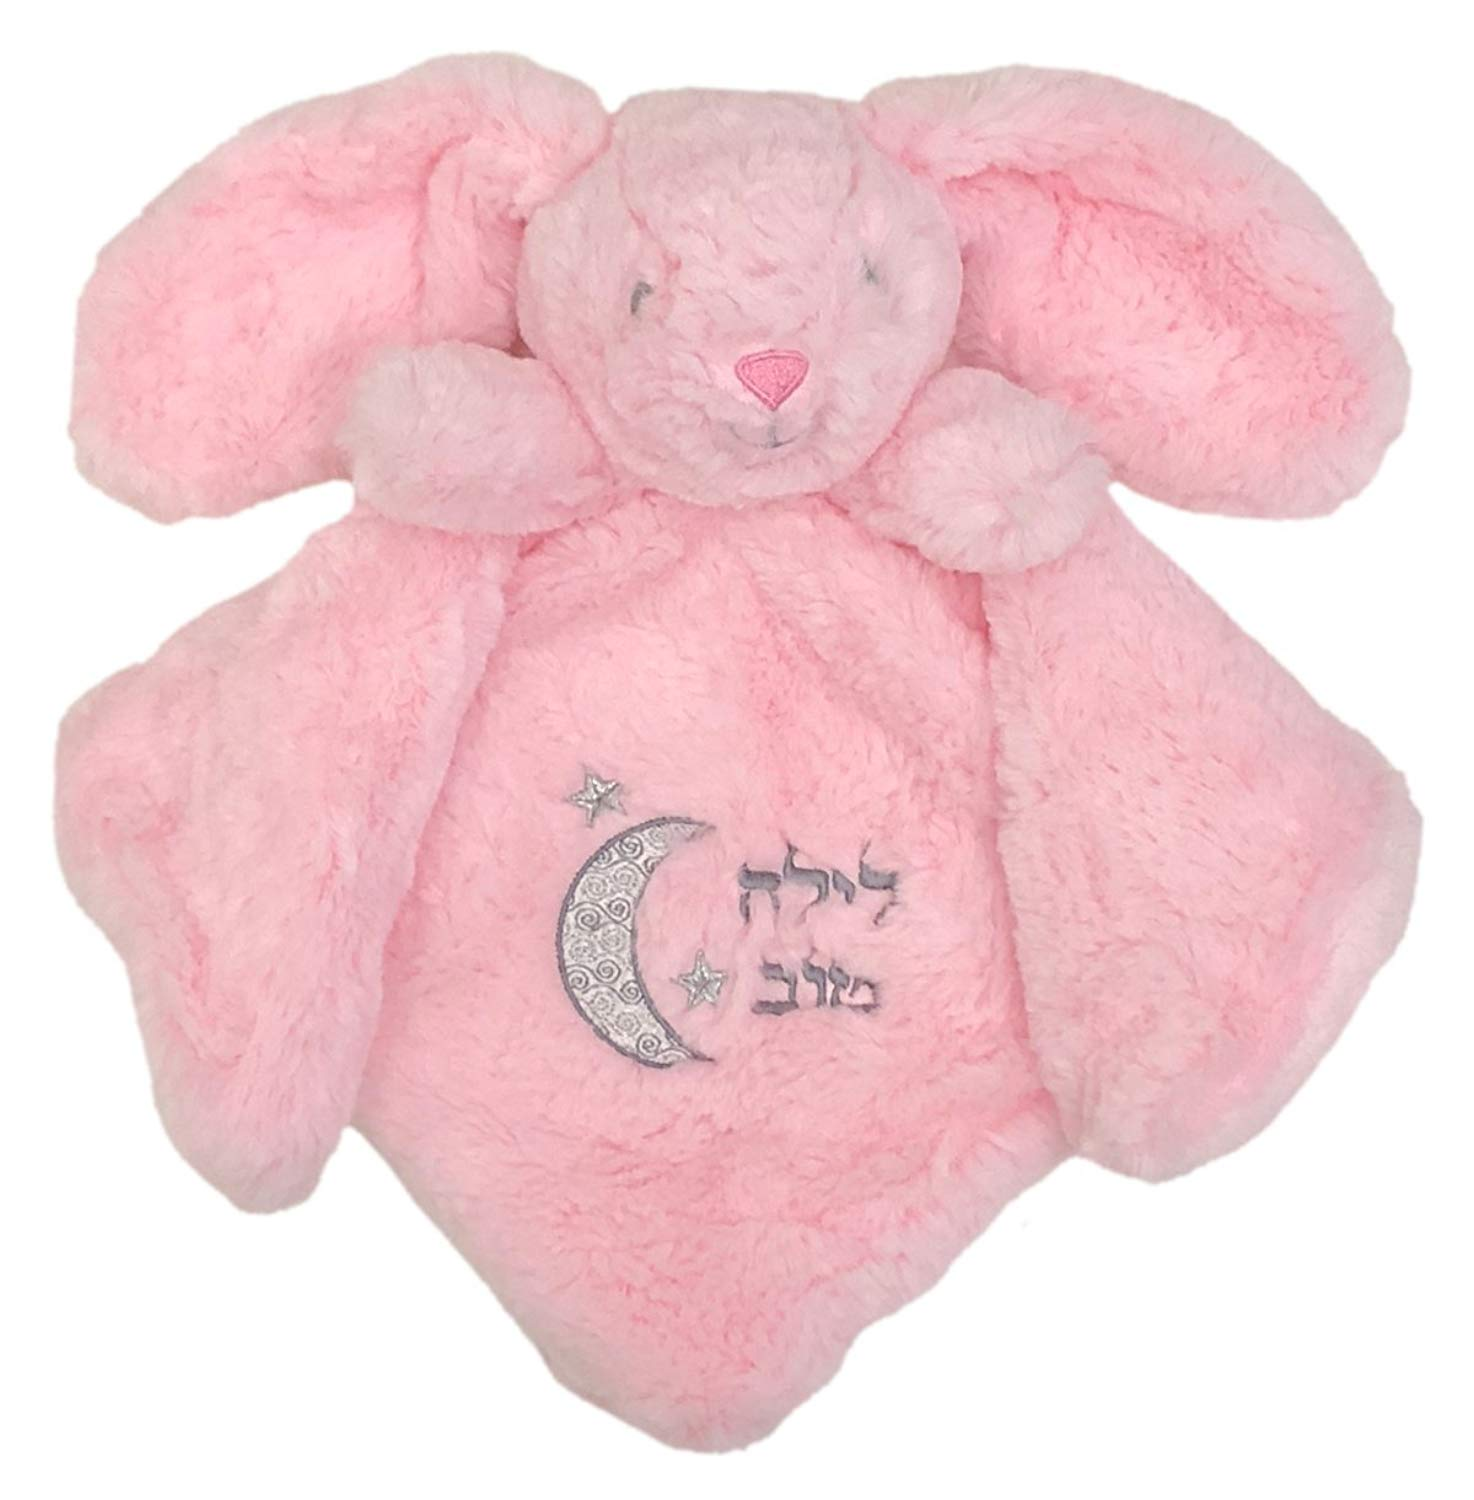 Jewish Baby Girl Gift Blankie Rattle Bunny Plush Toy,Hebrew Letters Layla Tov(Good Night).Embroidery Moon & Stars Baby Pink Blankie. Judaica Baby Blankie, Jewish Baby Gift, Naiming, Baby Shower